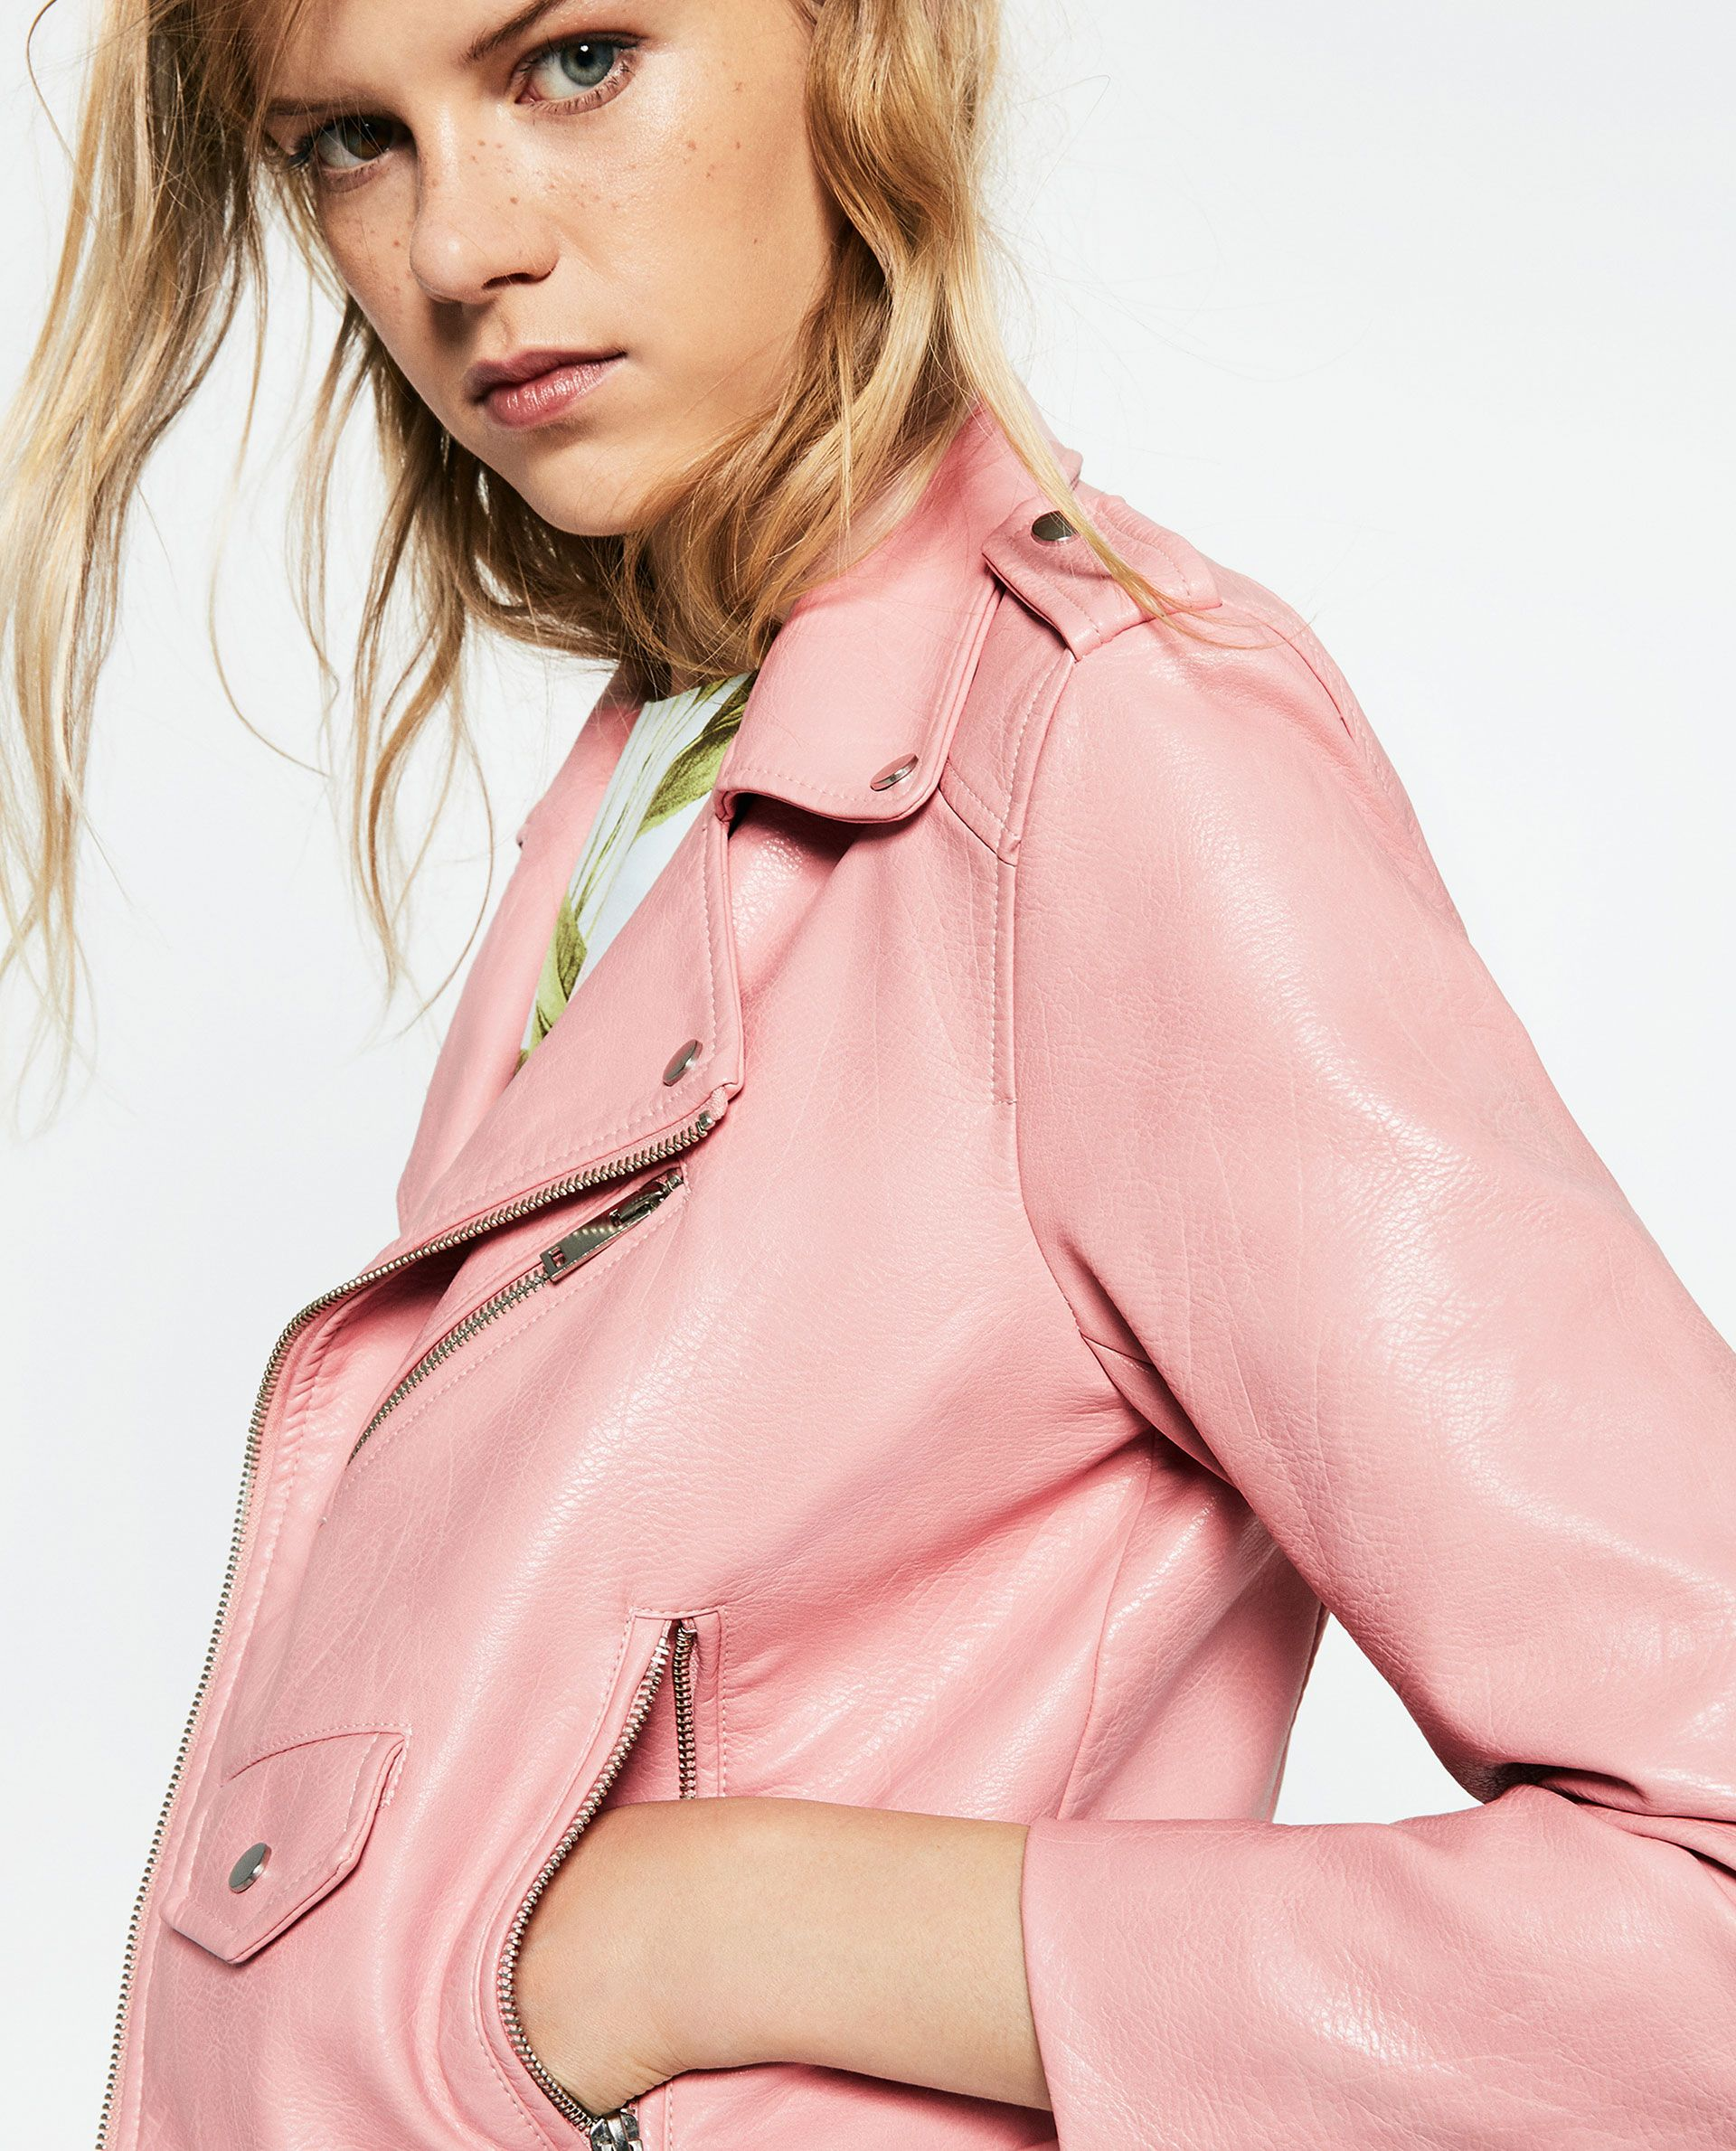 ZARA pink fauxleather jacket (With images) Leather